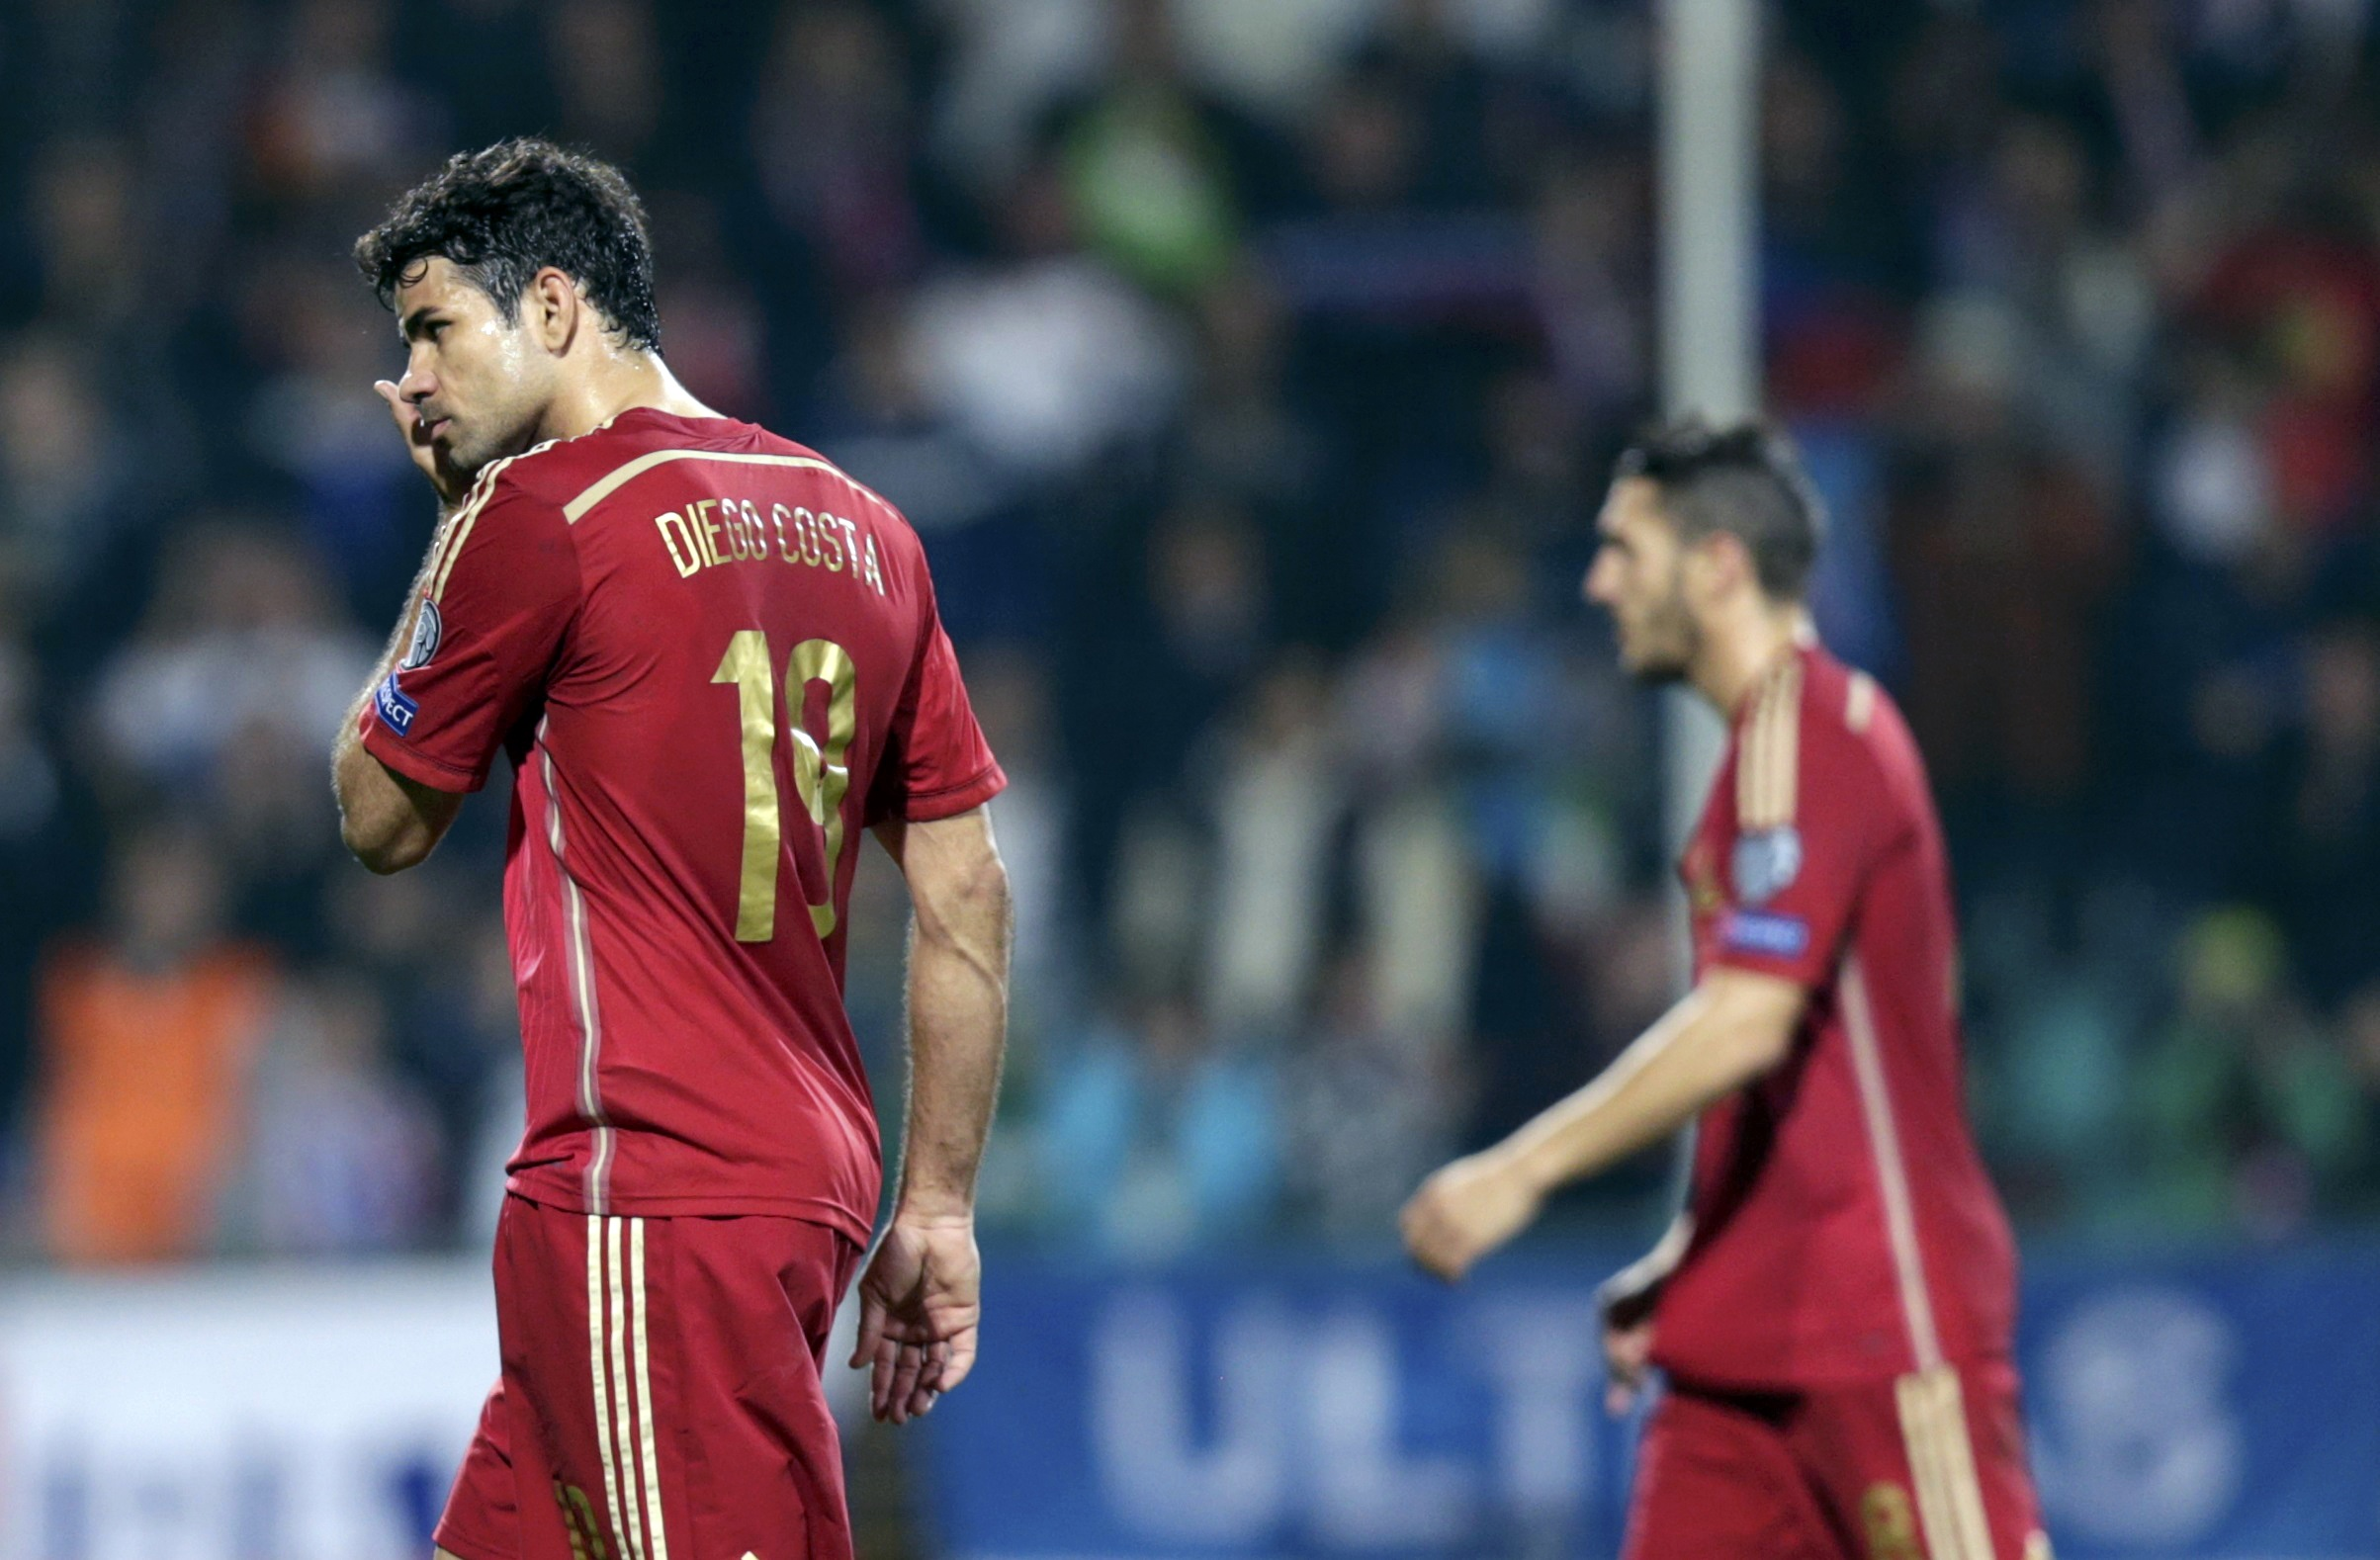 Spain not on downward spiral, says Del Bosque after defeat